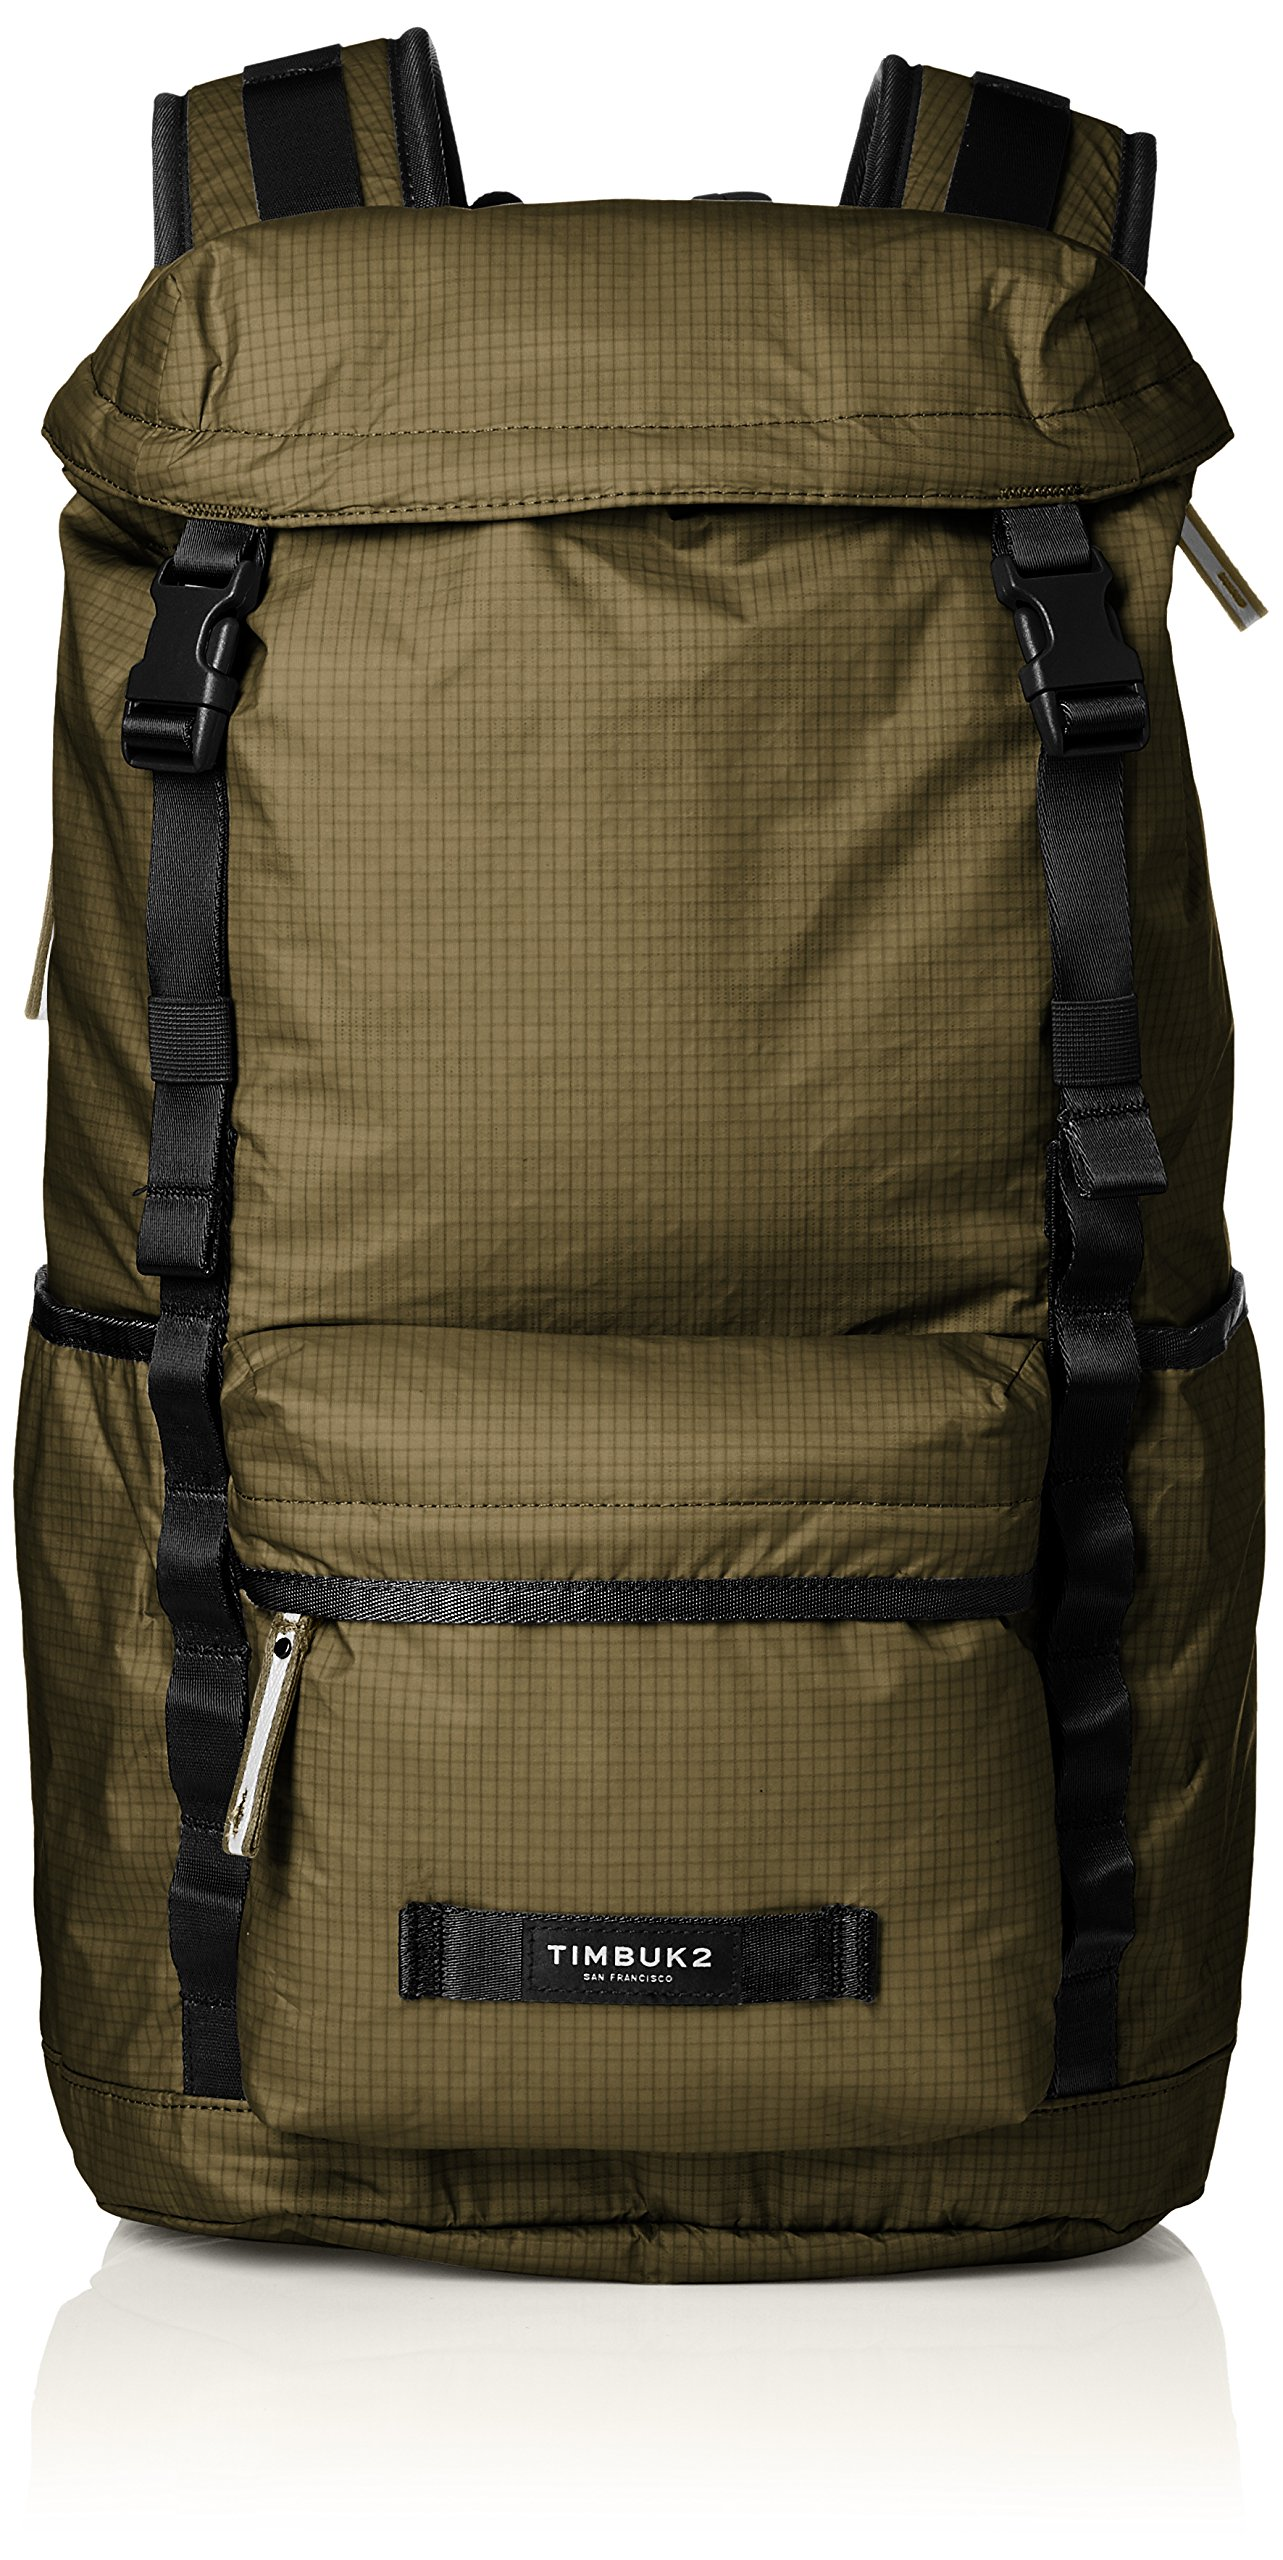 Timbuk2 Launch Pack, OS, Olivine by Timbuk2